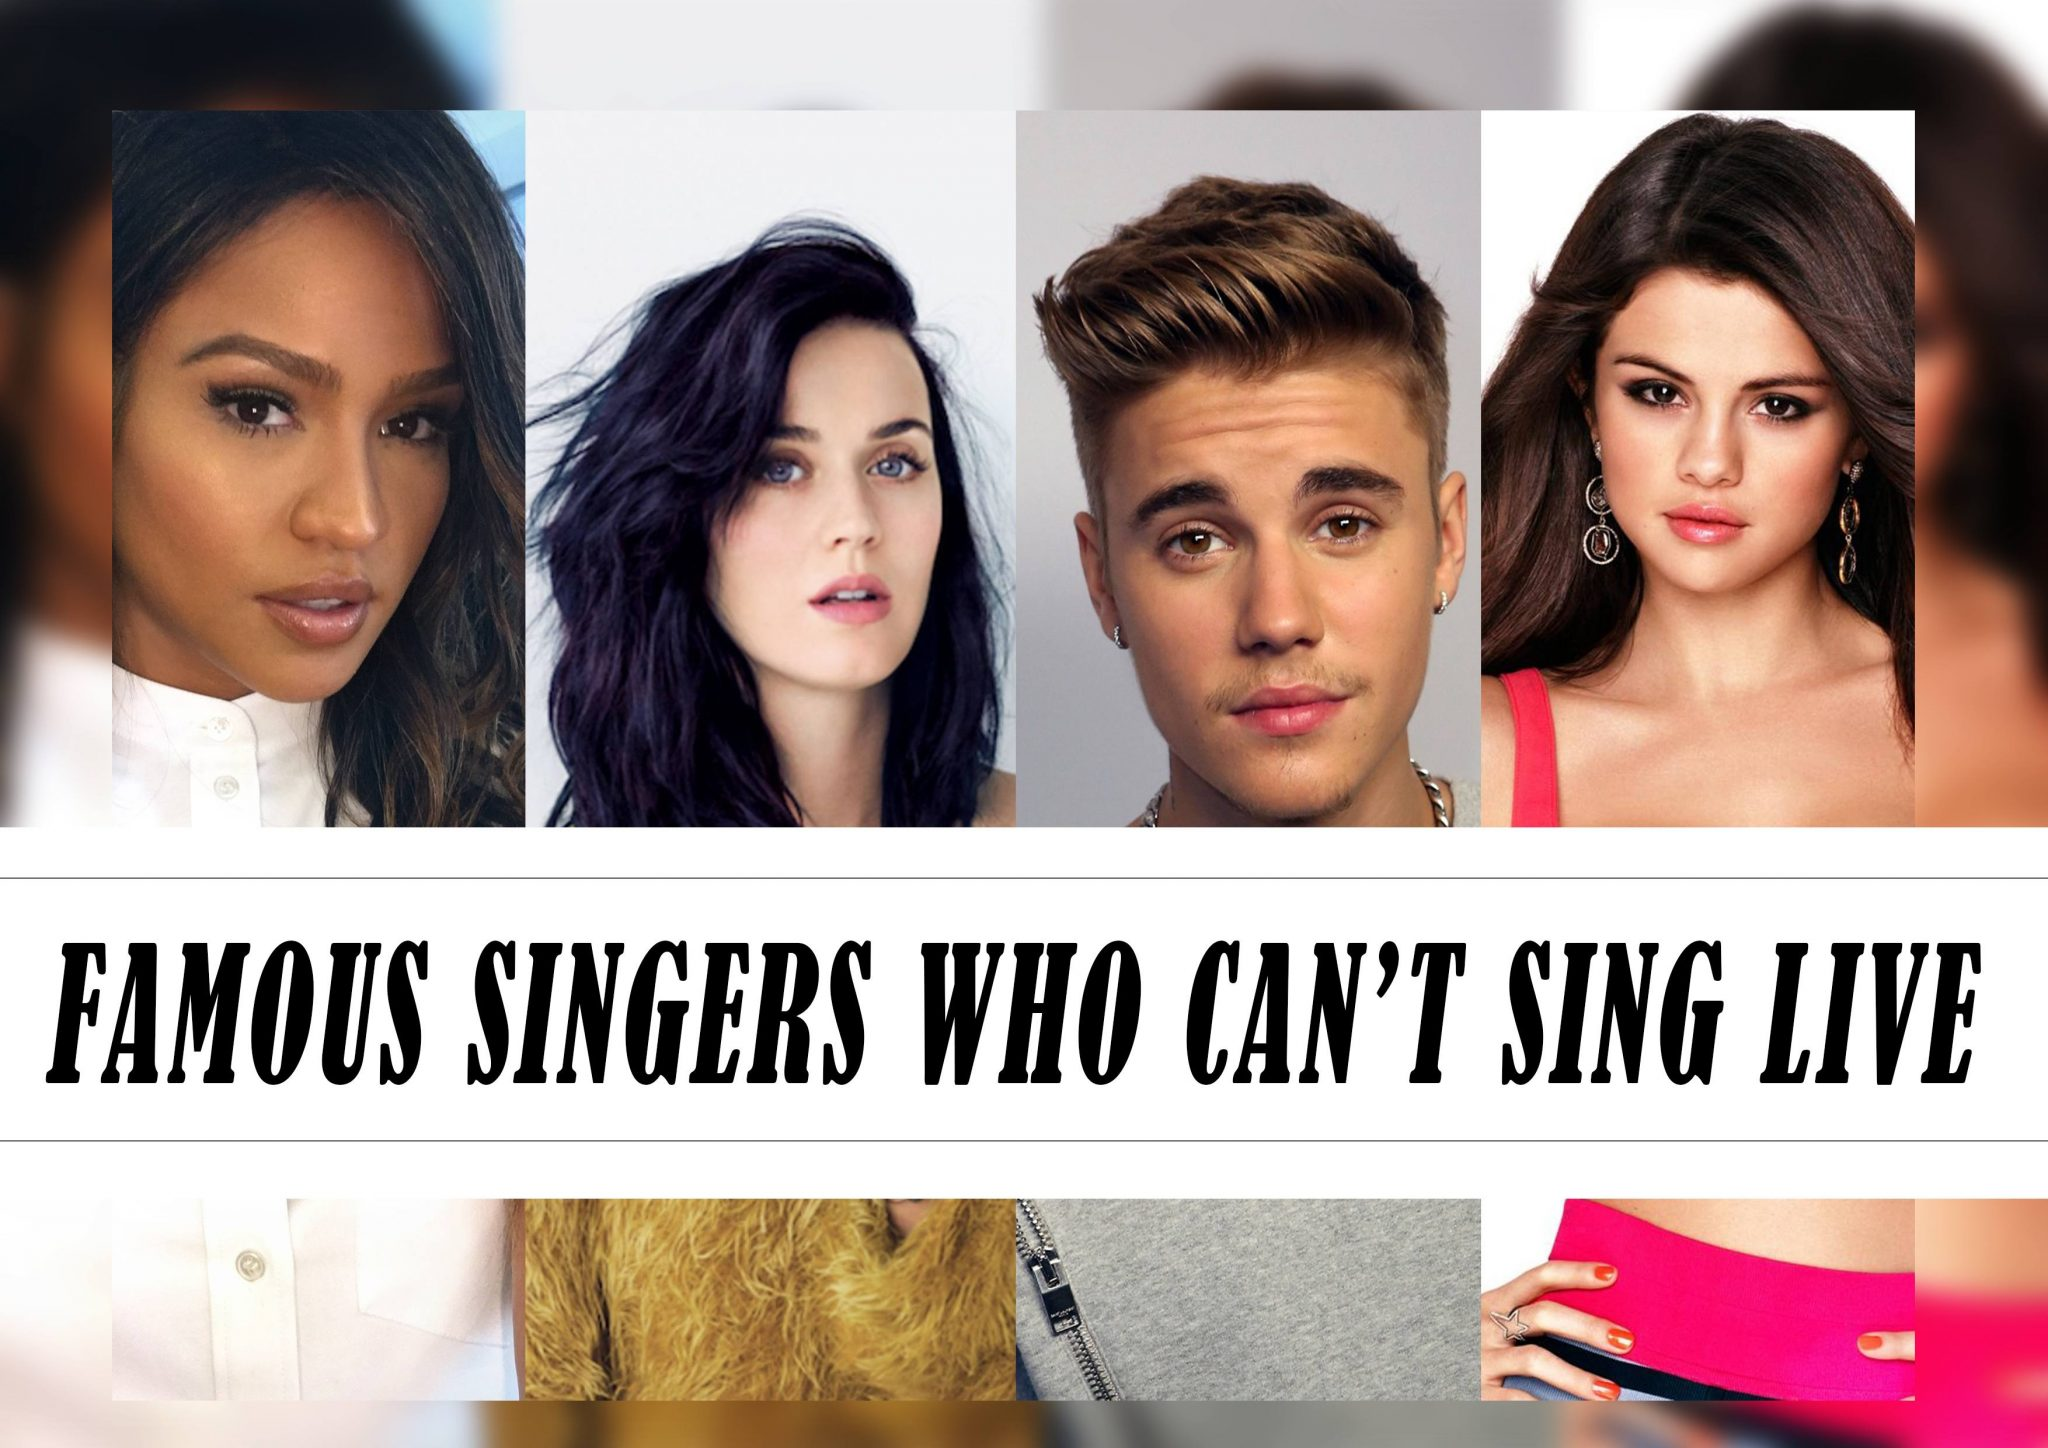 14 Famous Singers Who Can't Sing Live